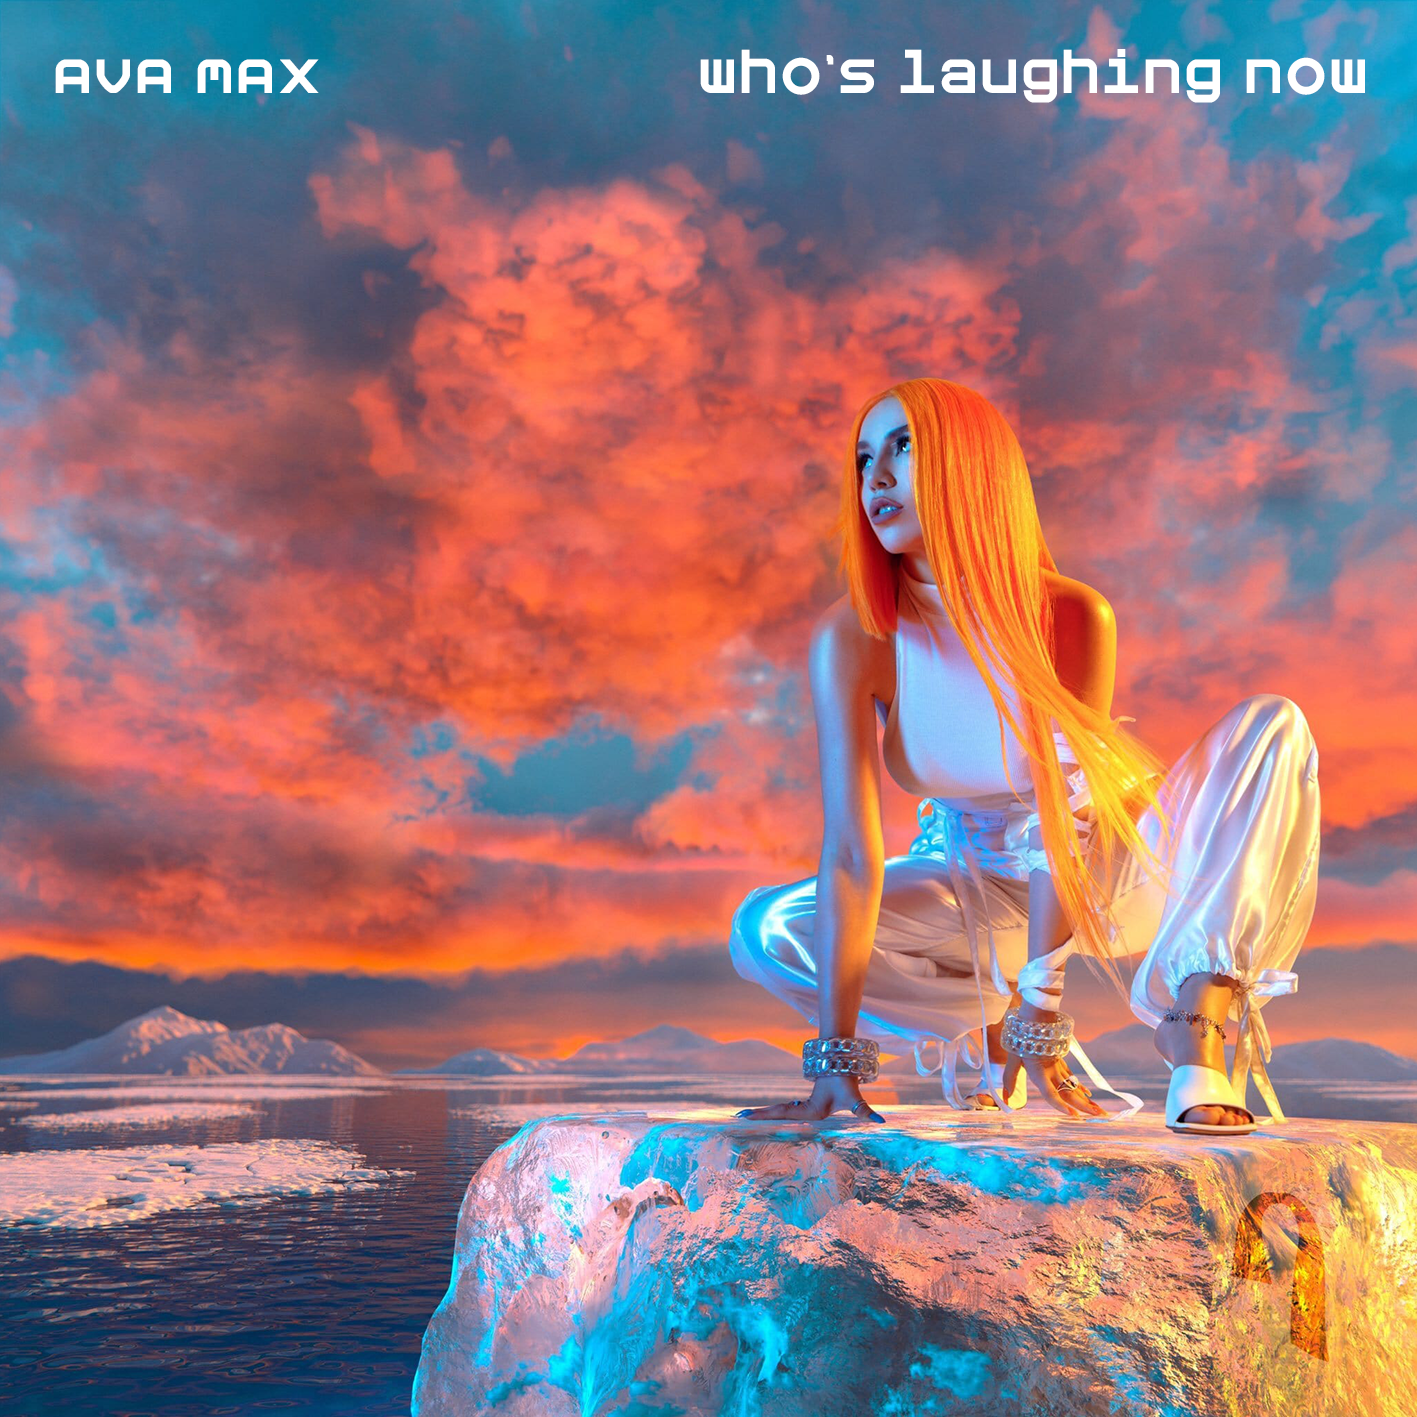 MOONCHILD-SERIES-ava-max-who-s-laughing-